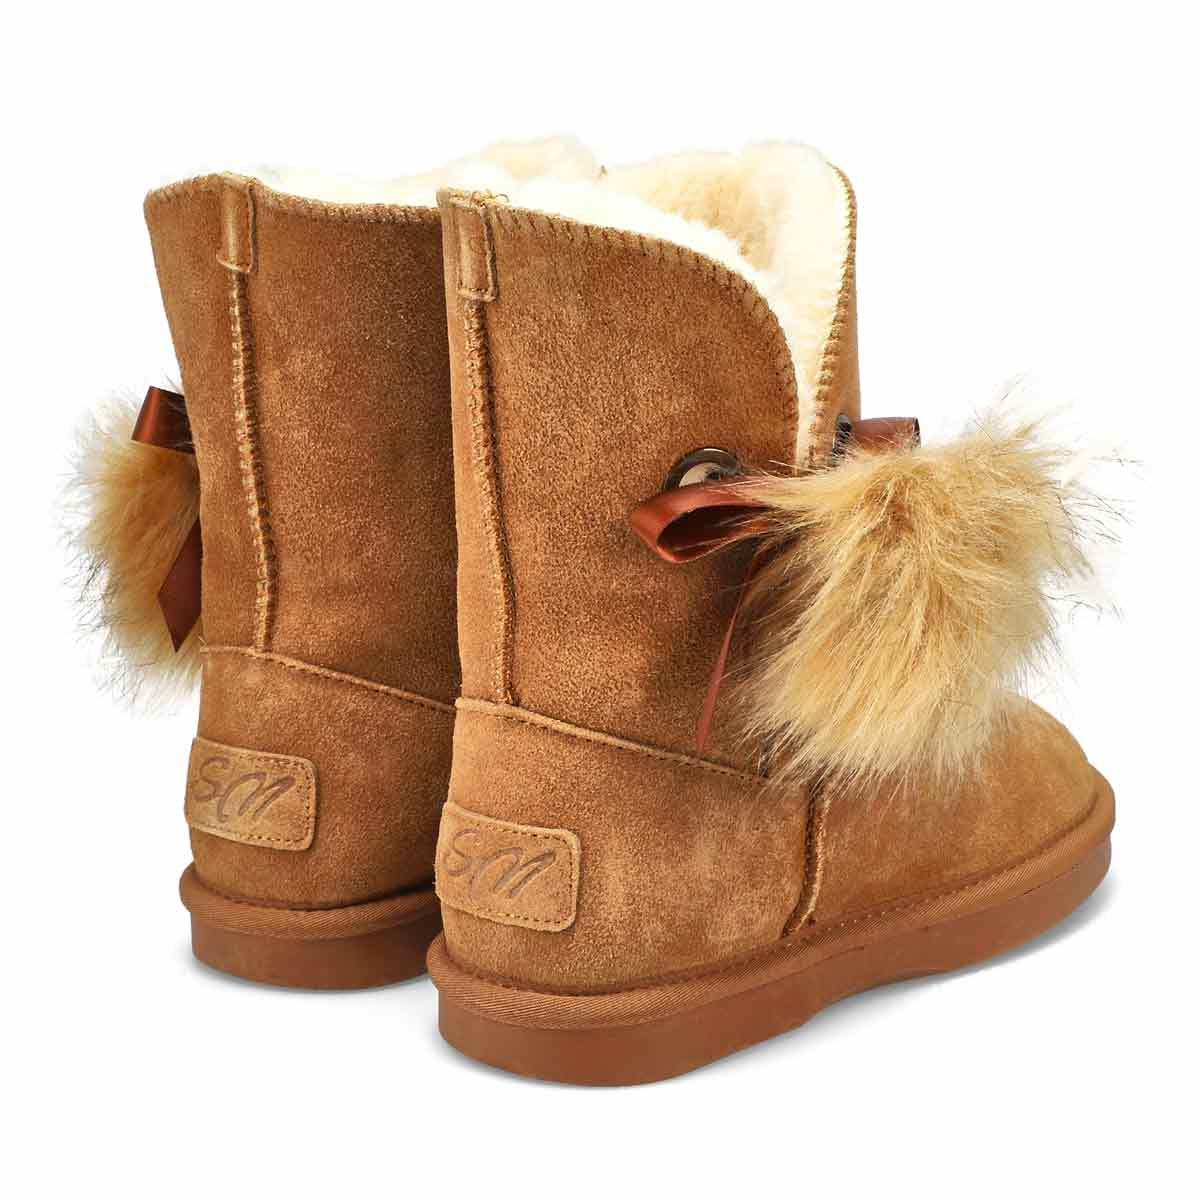 Lds Smocs Pom chestnut suede boot